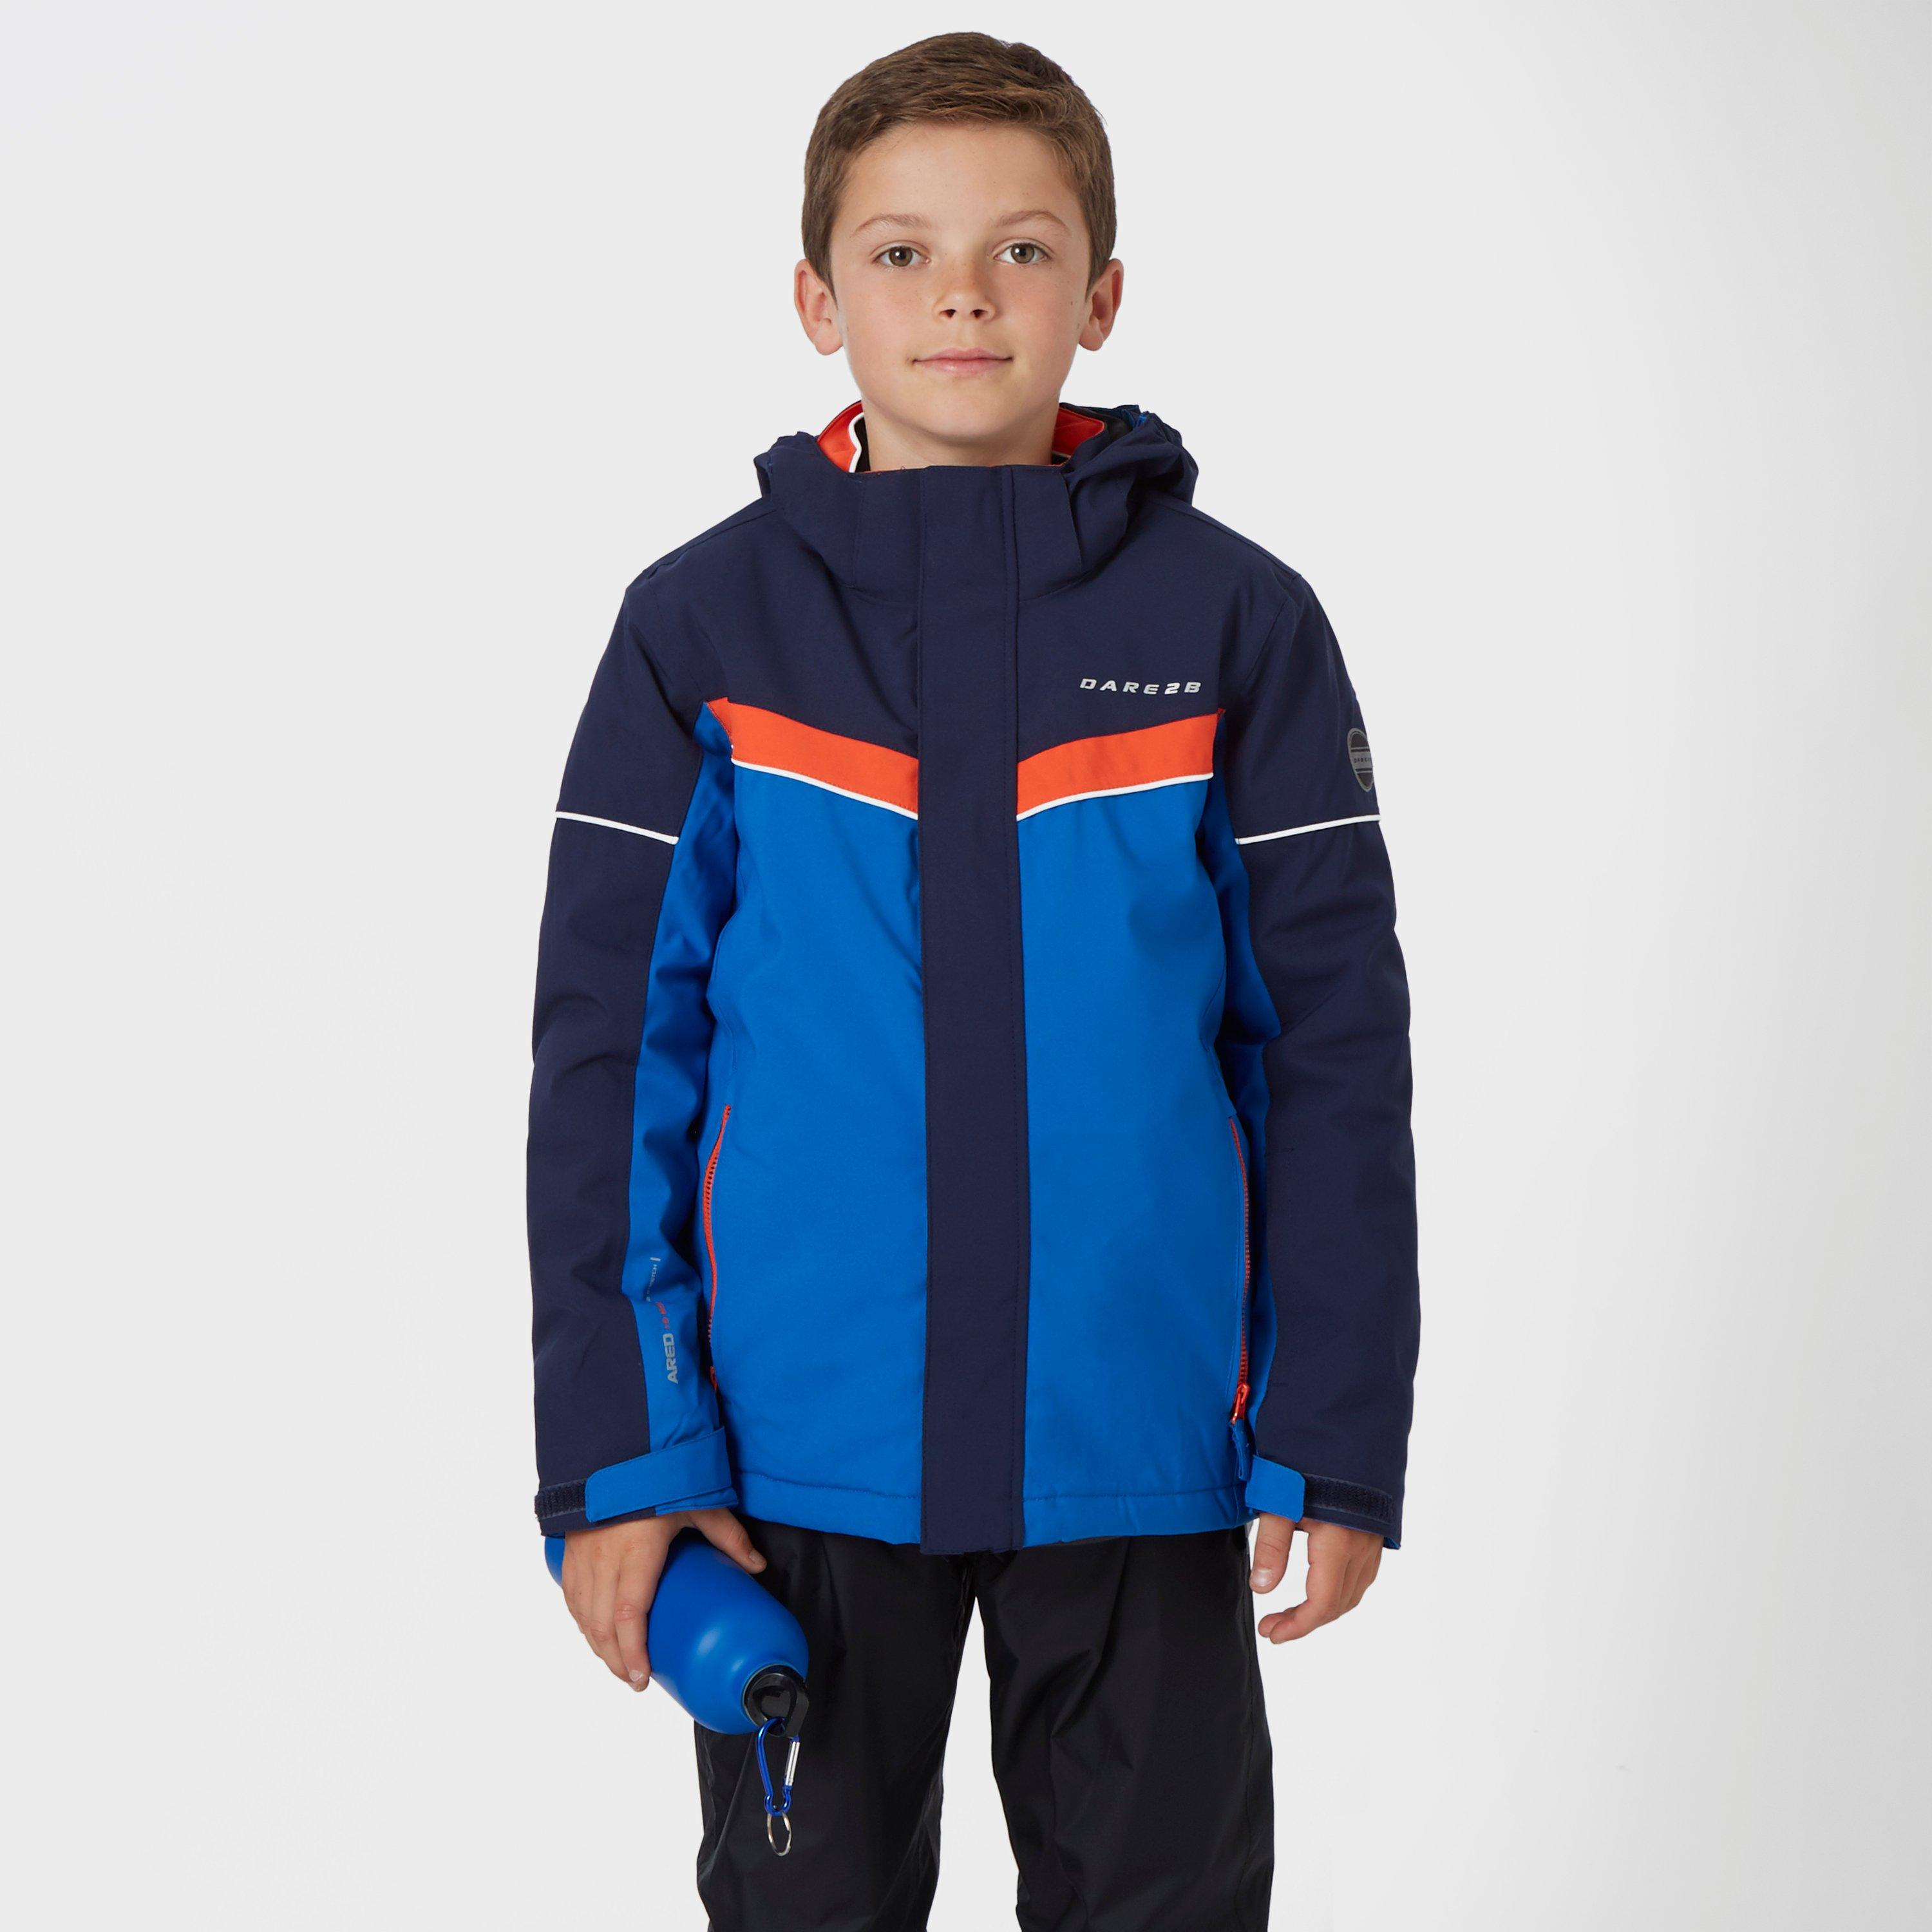 Discover the best Boys' Outerwear Vests in Best Sellers. Find the top most popular items in Amazon Best Sellers.